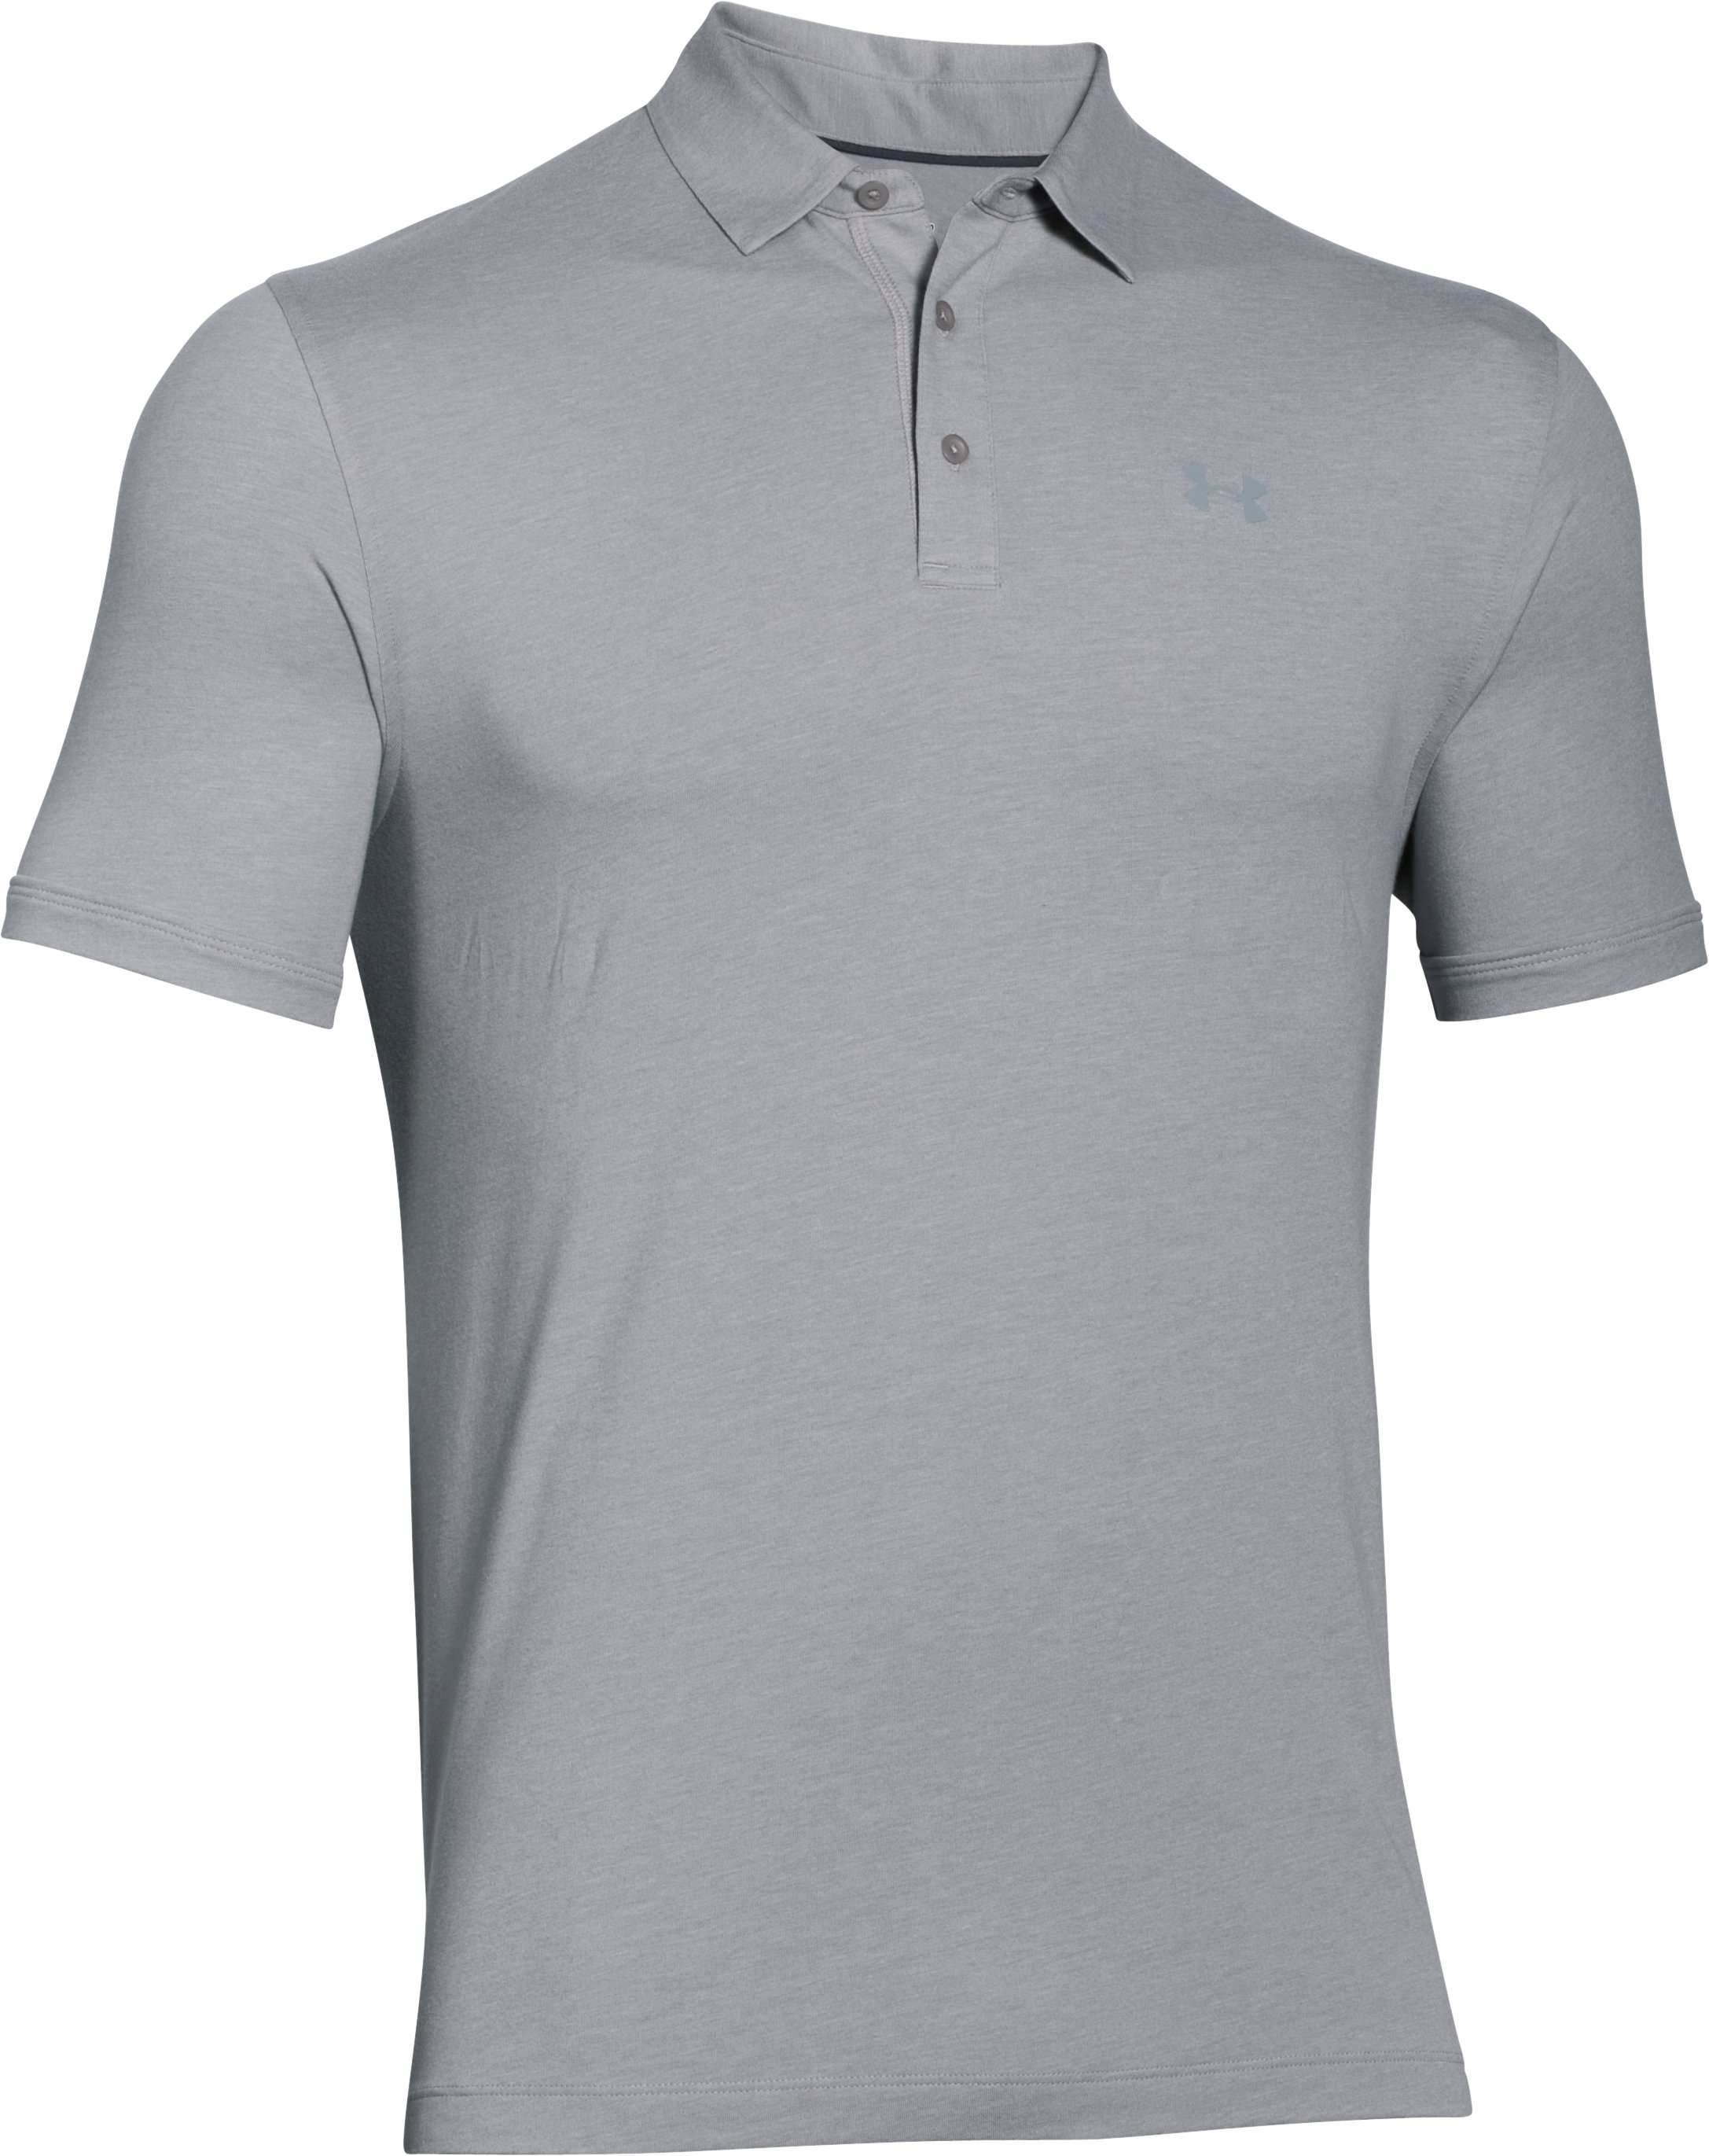 Men's Charged Cotton® Scramble Polo, True Gray Heather,